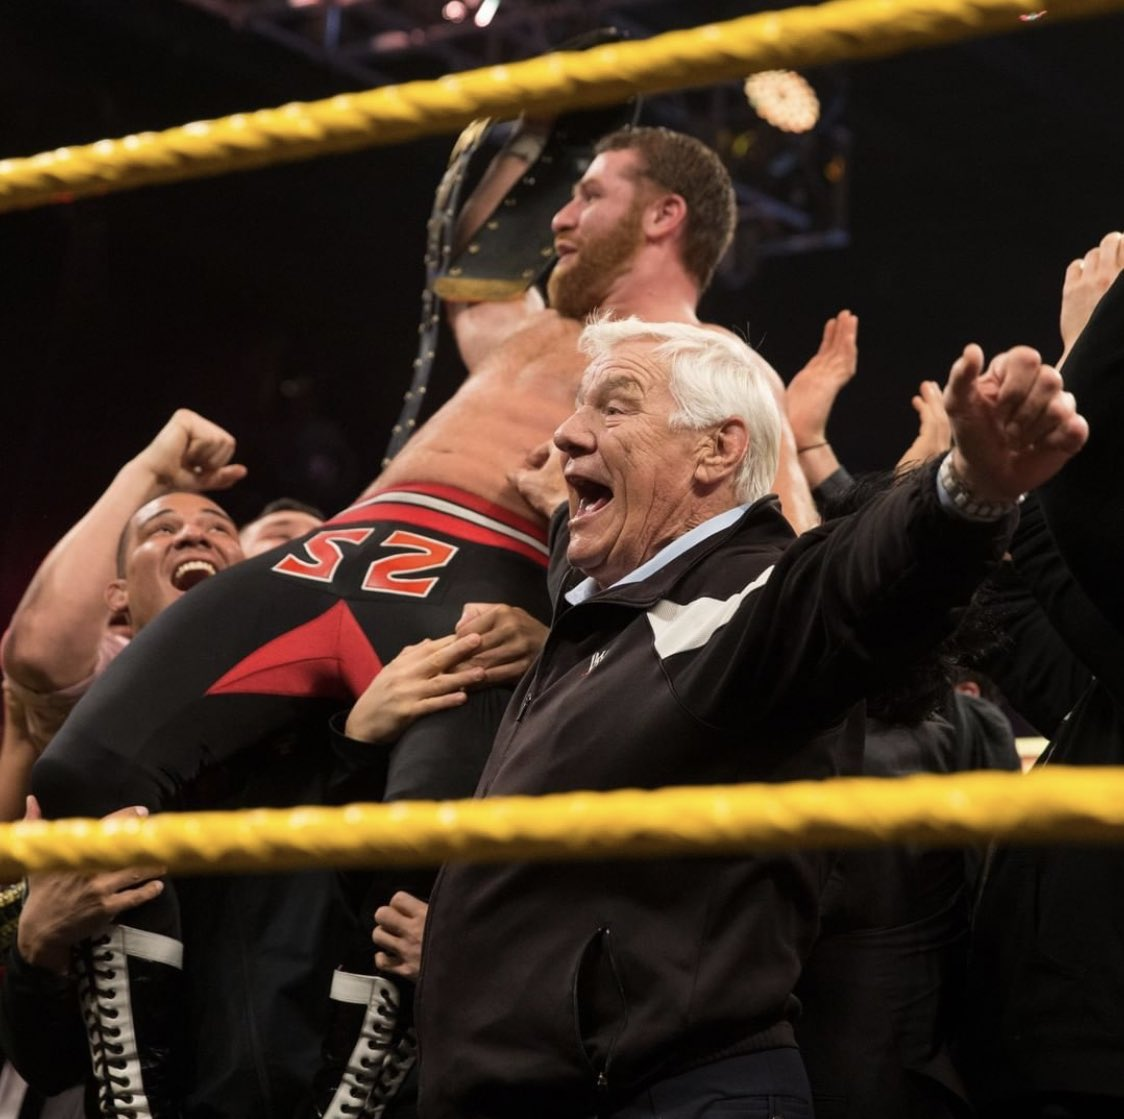 """When I won the NXT Title, Pat was so proud & so happy, he HAD to be there to celebrate with me. If you watch it now it's so funny, all the NXT kids...and Pat Patterson. He's the happiest one there. They told him """"Pat you can't go out there"""" and he said,  """"TRY AND FUCKING STOP ME"""""""